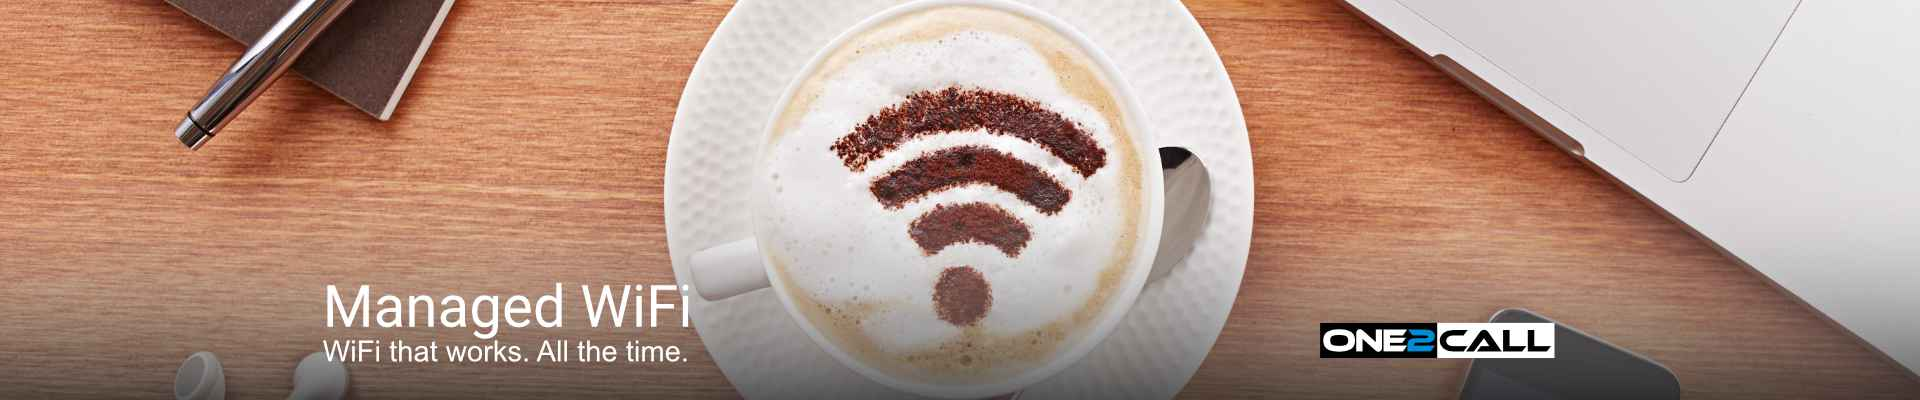 Managed WiFi - WiFi that works. All the time.